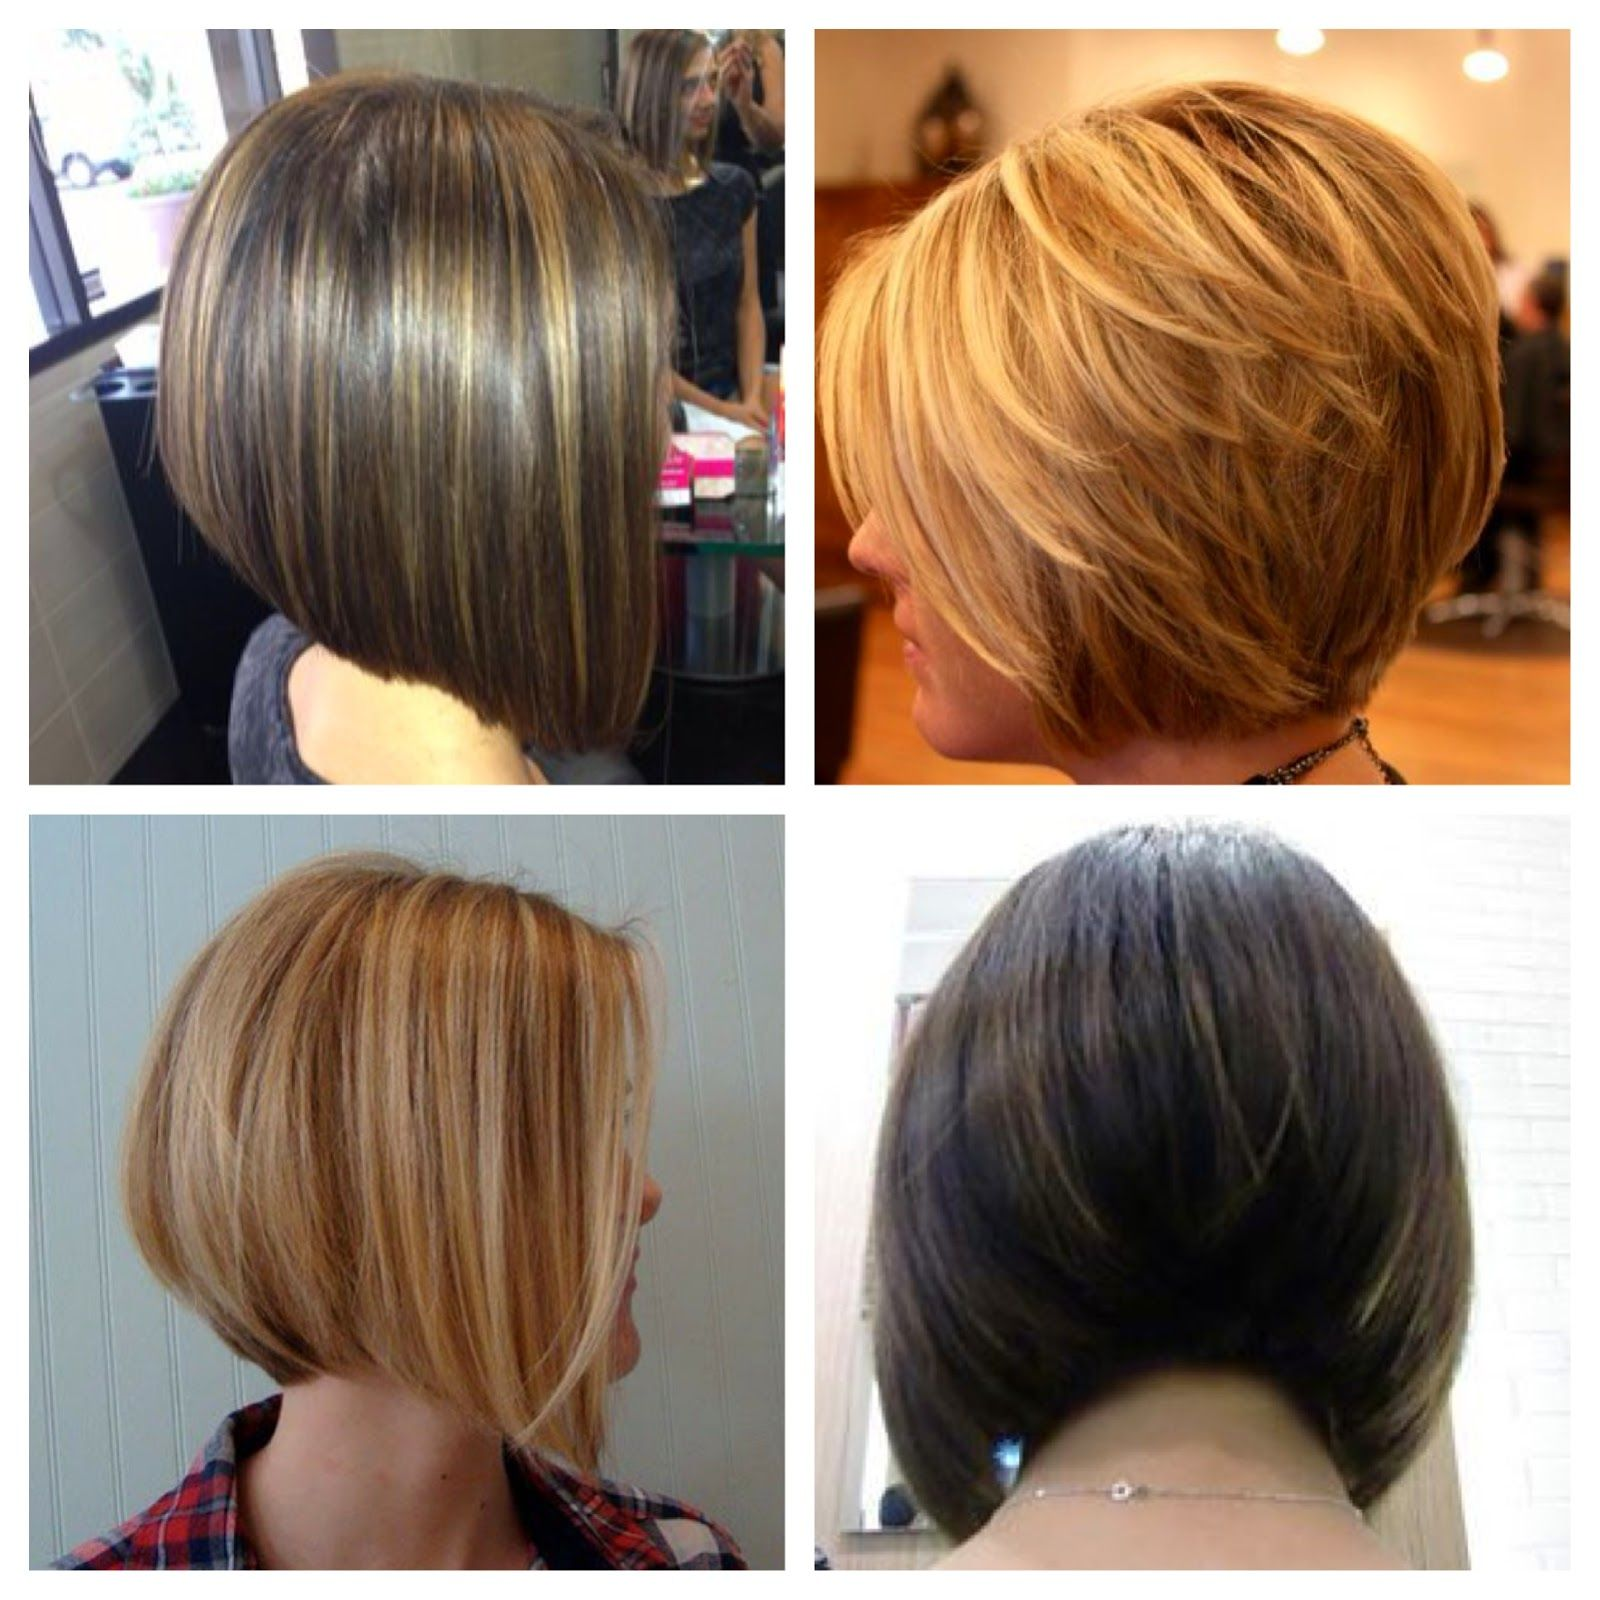 Inverted Bob Haircut Back View 78 With Inverted Bob Haircut Back View Jpg 1 600 1 600 Pixels Bob Hairstyles Inverted Bob Hairstyles Angled Bob Hairstyles